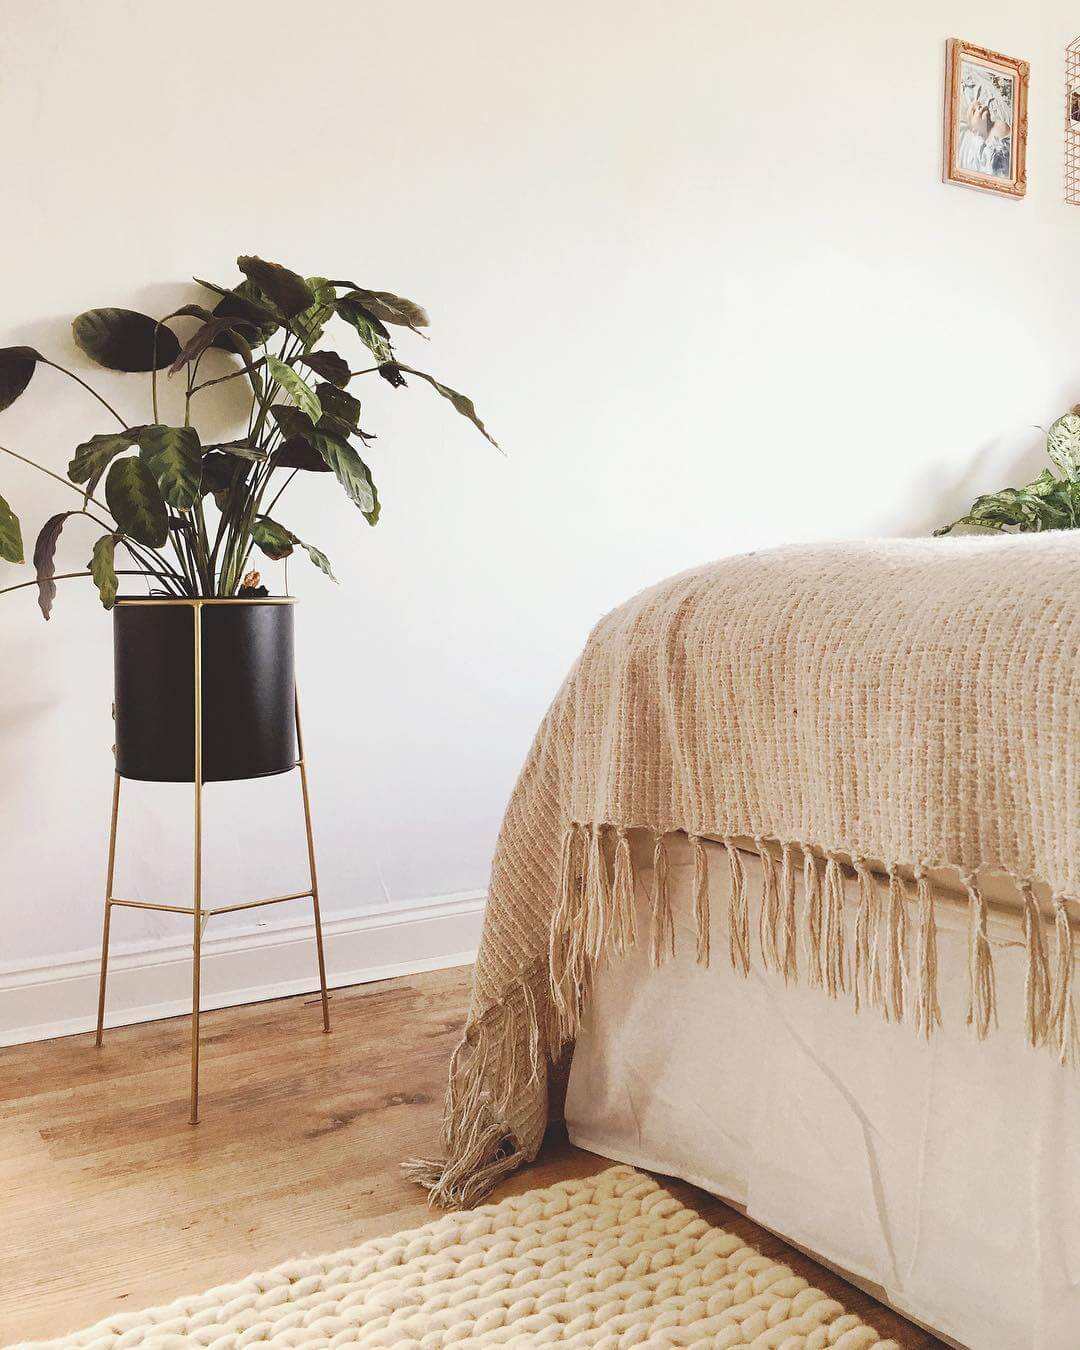 It's easy to infuse your home with positive vibes when you know how. Find out more on www.lovetohome.co.uk. Photo credit: @heymamablog via Instagram